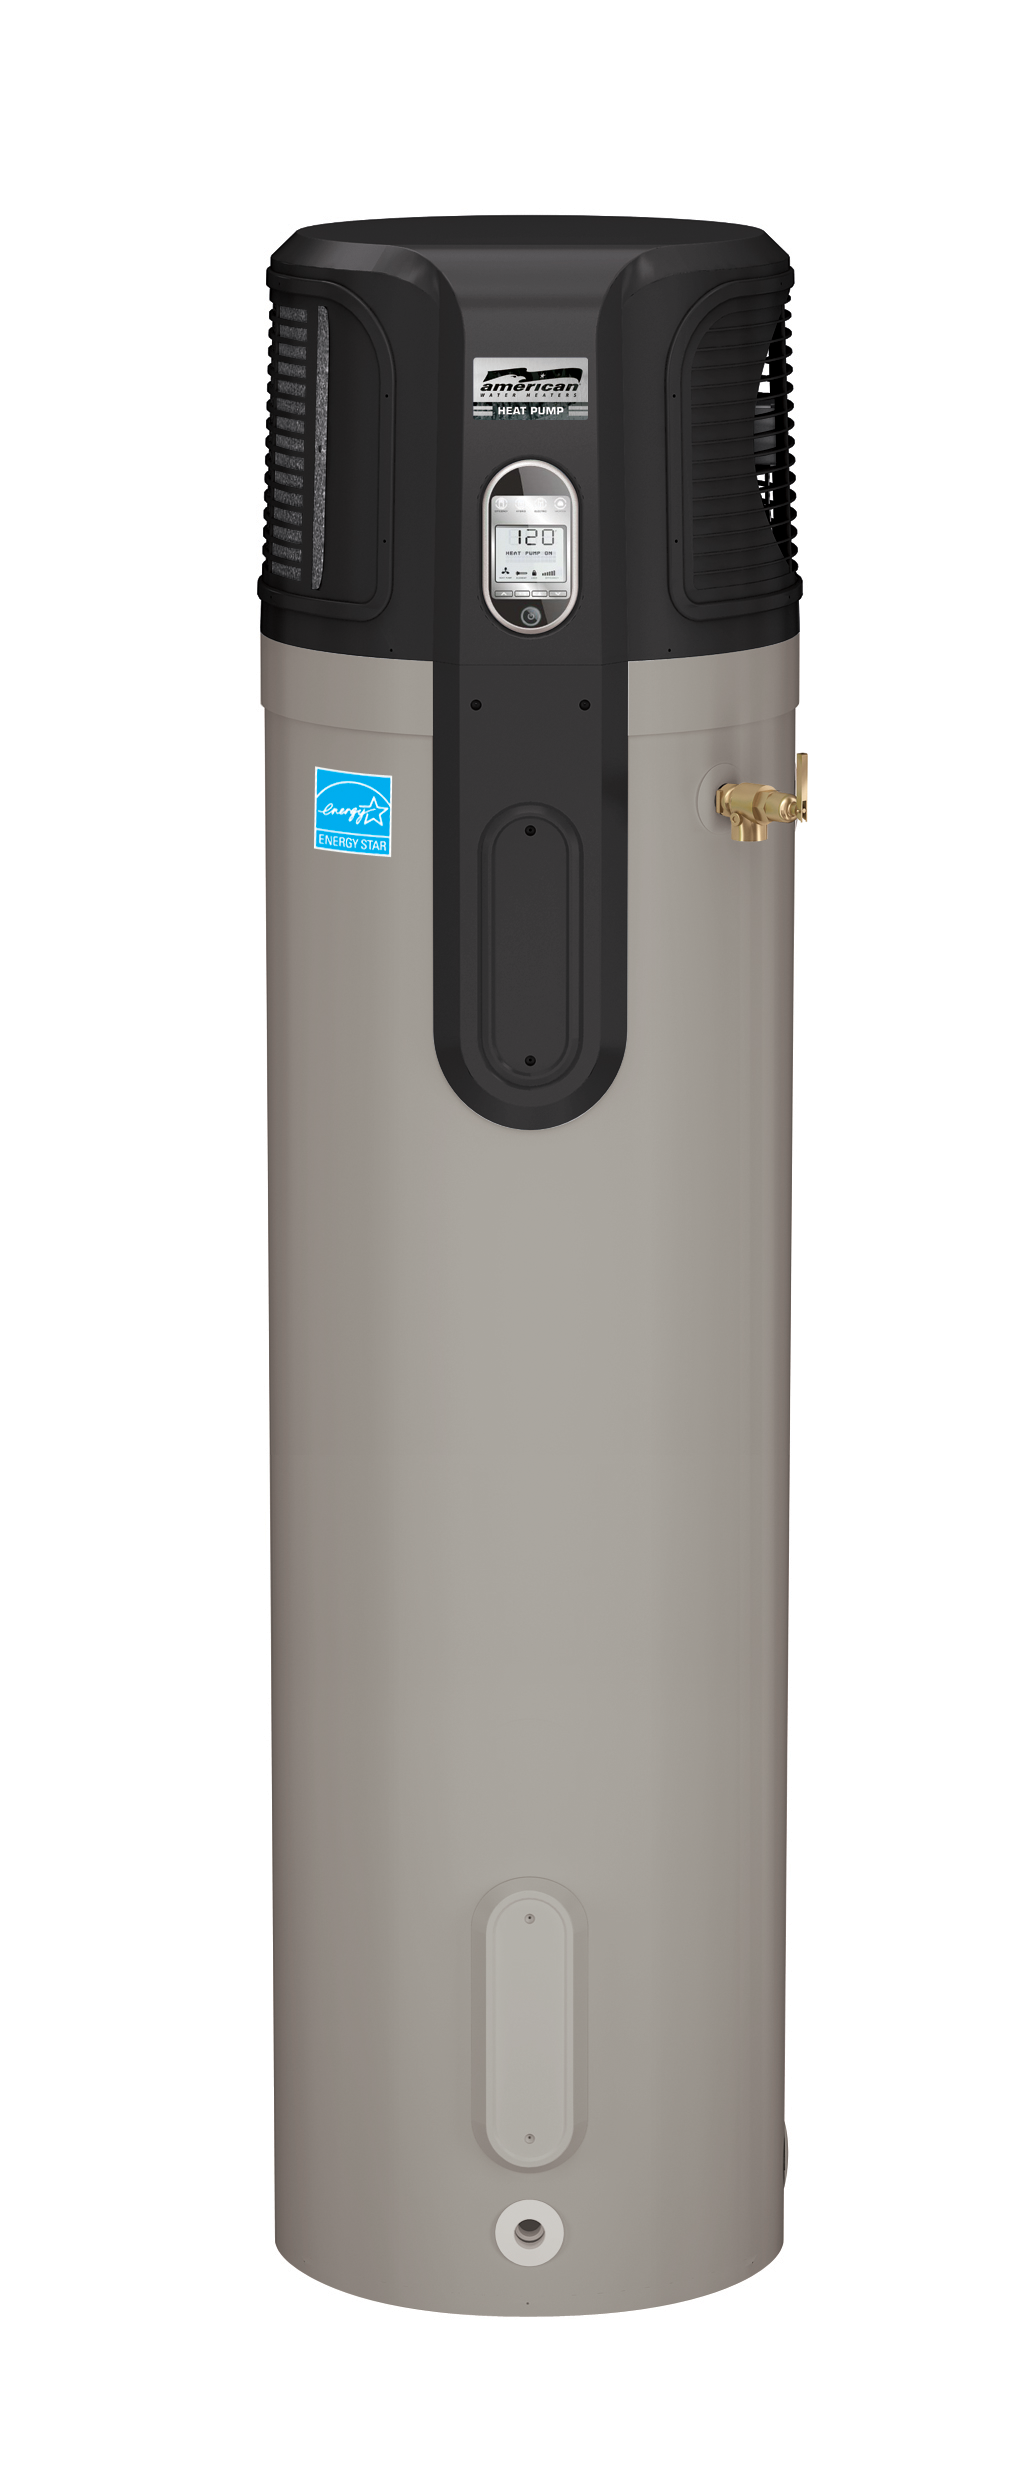 A O Smith Dve 120 24 Commercial Tank Type Water Heater Electric 120 Gal Gold Xi Series 24kw Input Will Smith Natural Gas Water Heater Thermal Efficiency